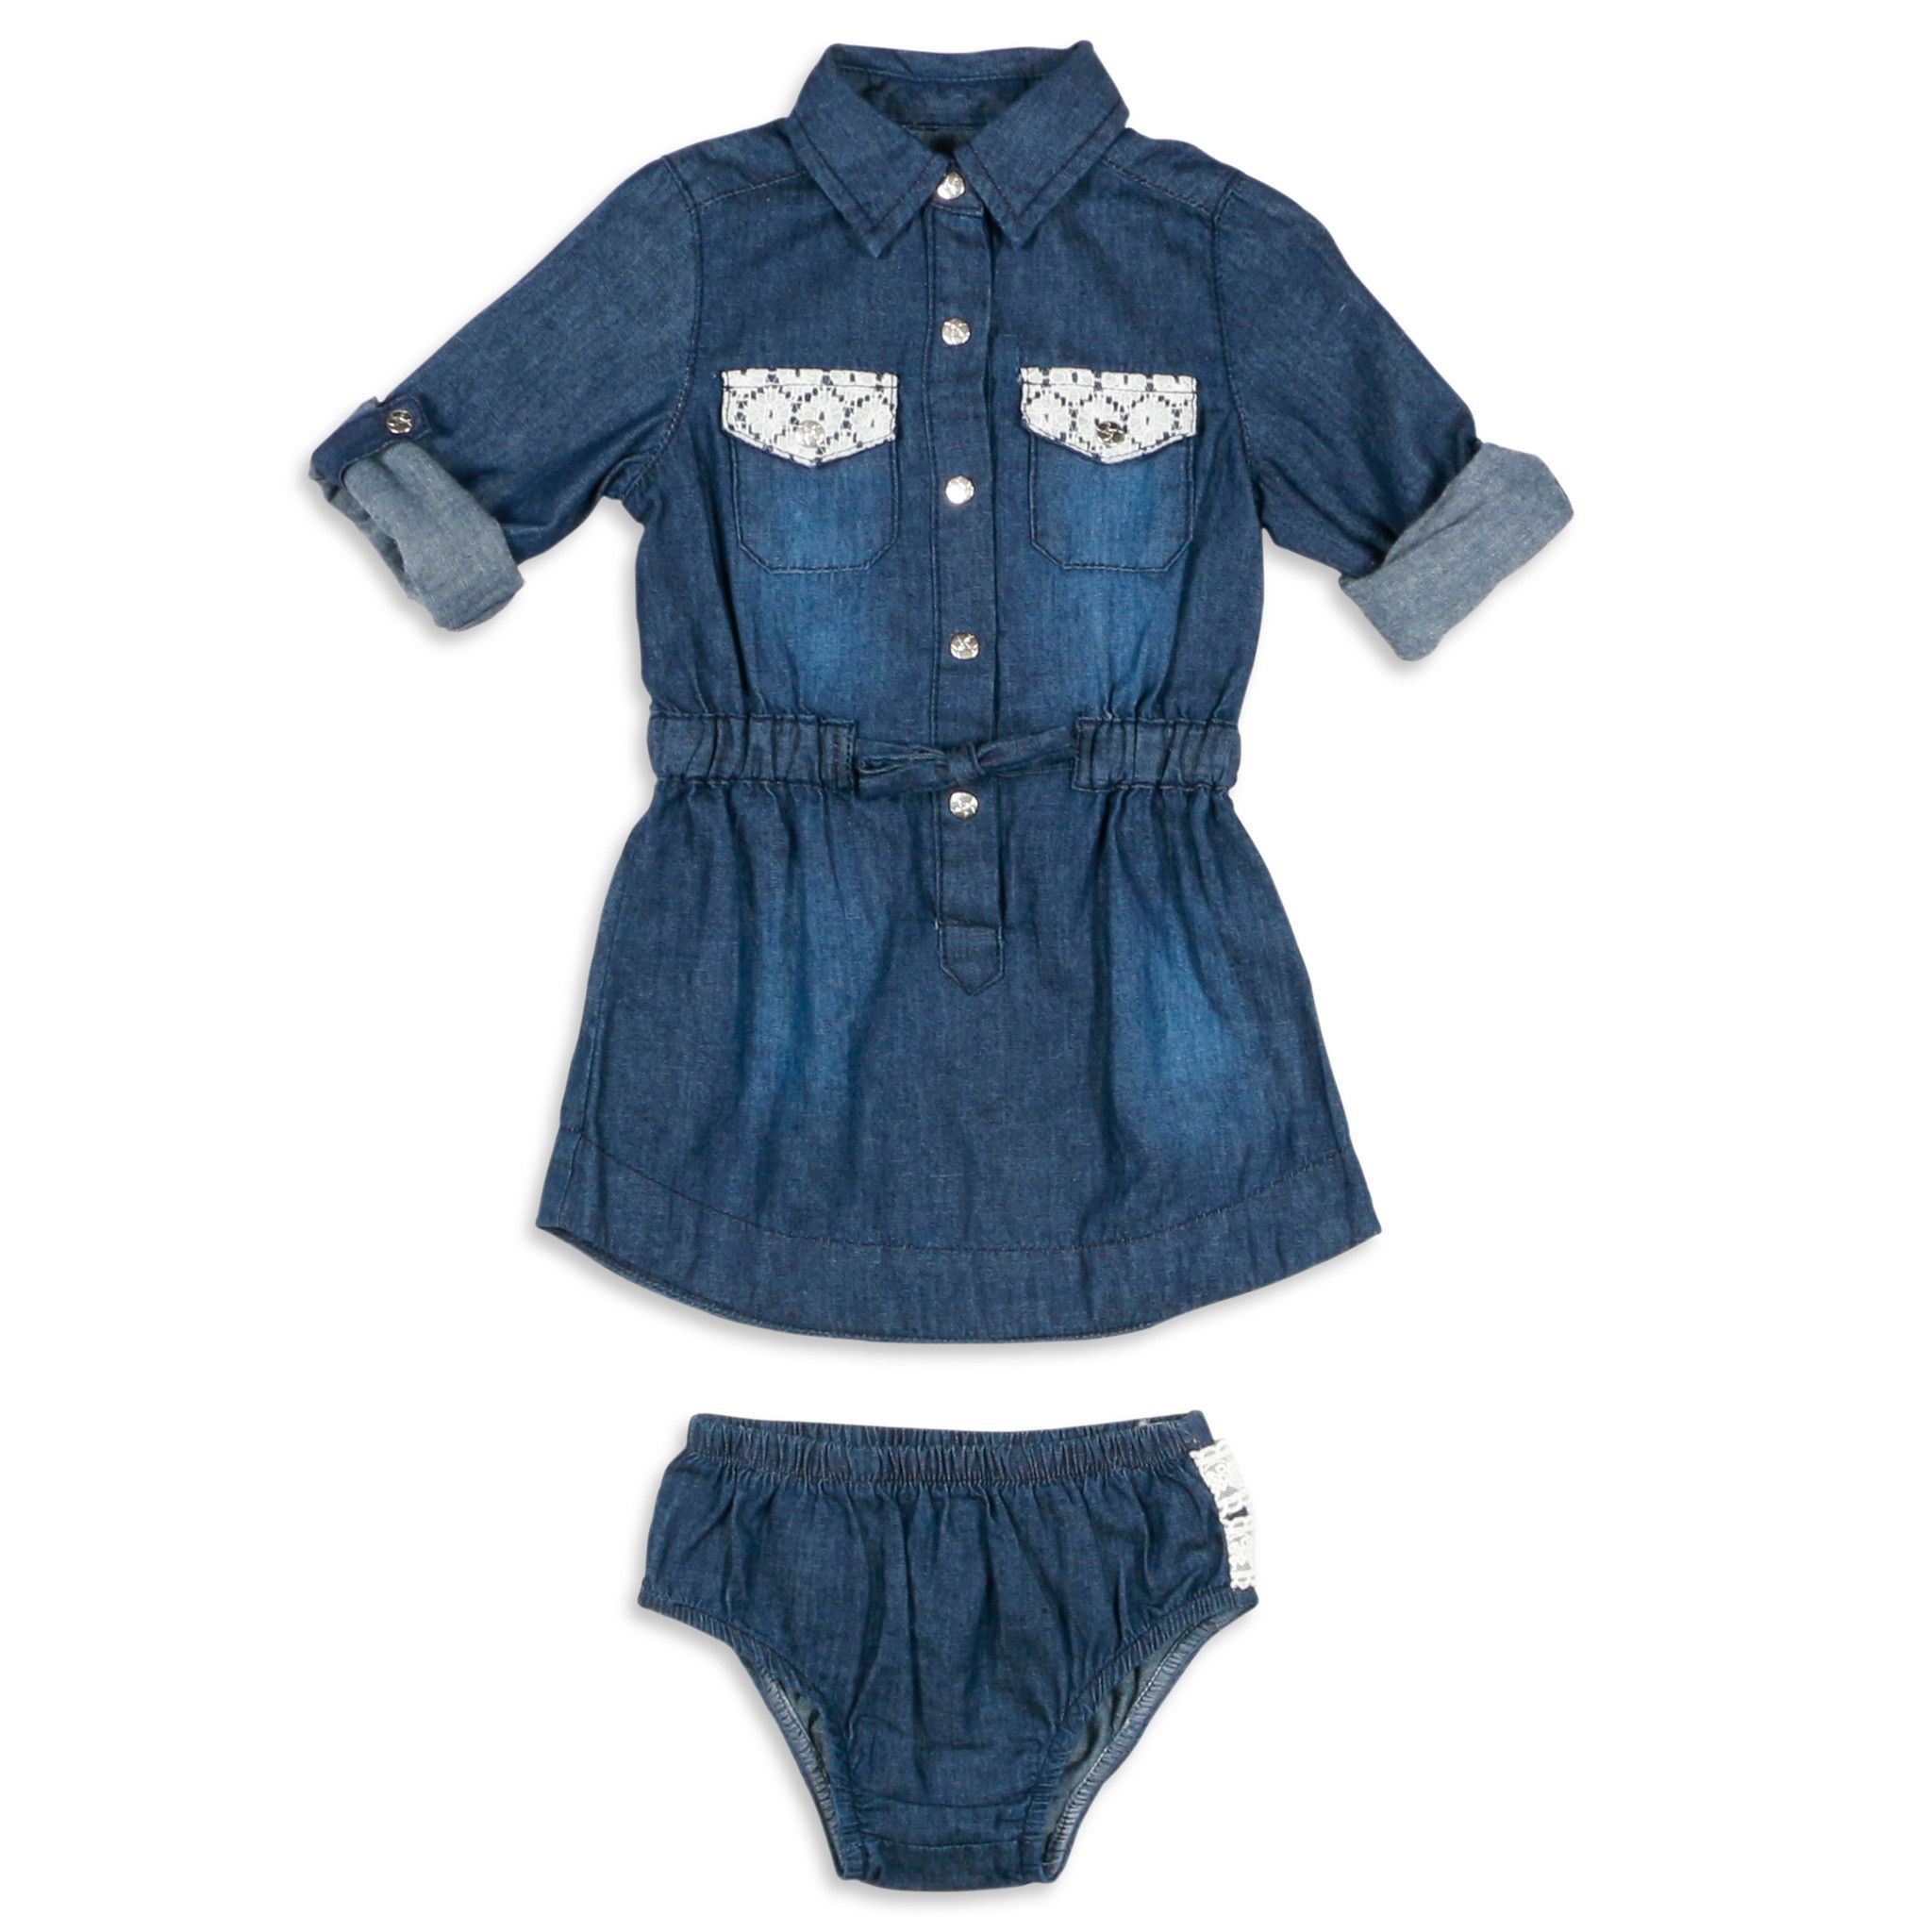 Jessica Simpson Baby Girls 12 24 Months Denim Dress